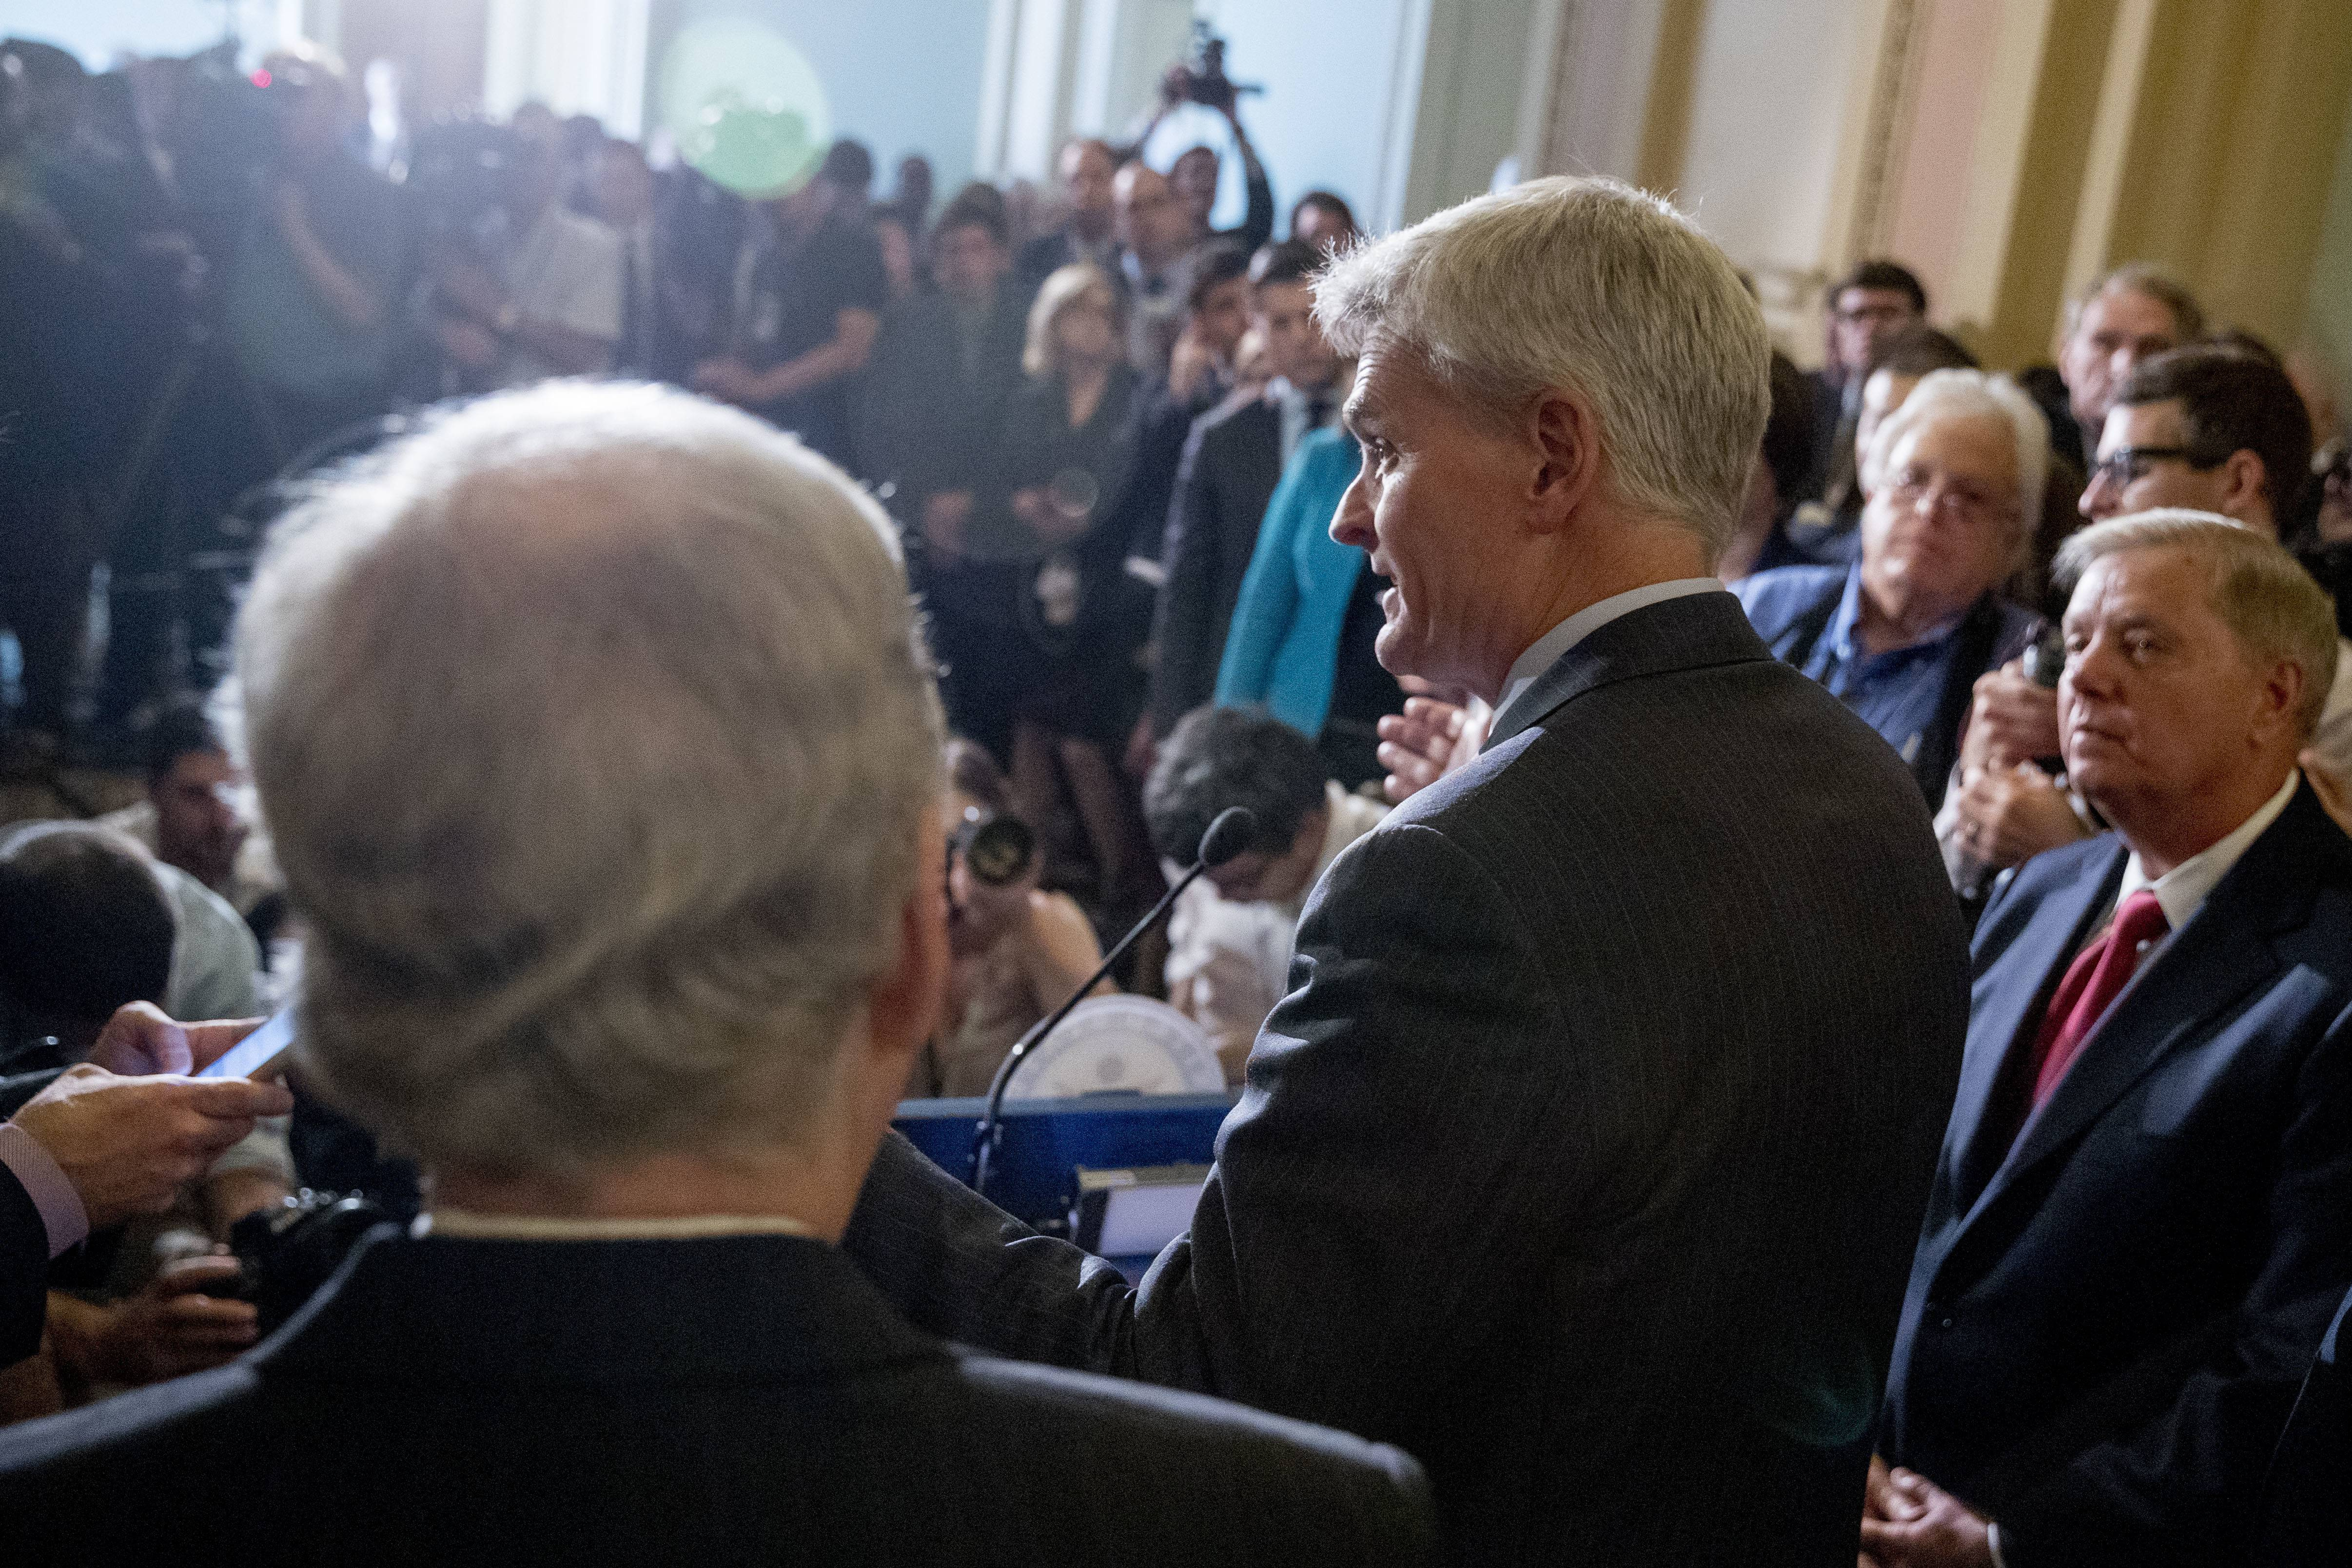 Sen. Lindsey Graham of South Carolina, flanked by Sen. Bill Cassidy of Louisiana, left, and Senate Majority Leader Mitch McConnell of Kentucky, right, speaks to reporters as Republicans faced assured defeat on the Graham-Cassidy bill, the GOP's latest attempt to repeal the Affordable Care Act on Tuesday in Washington, D.C. The decision marked the latest defeat on the issue for President Donald Trump and Senate Majority Leader Mitch McConnell in the Republican-controlled Congress.